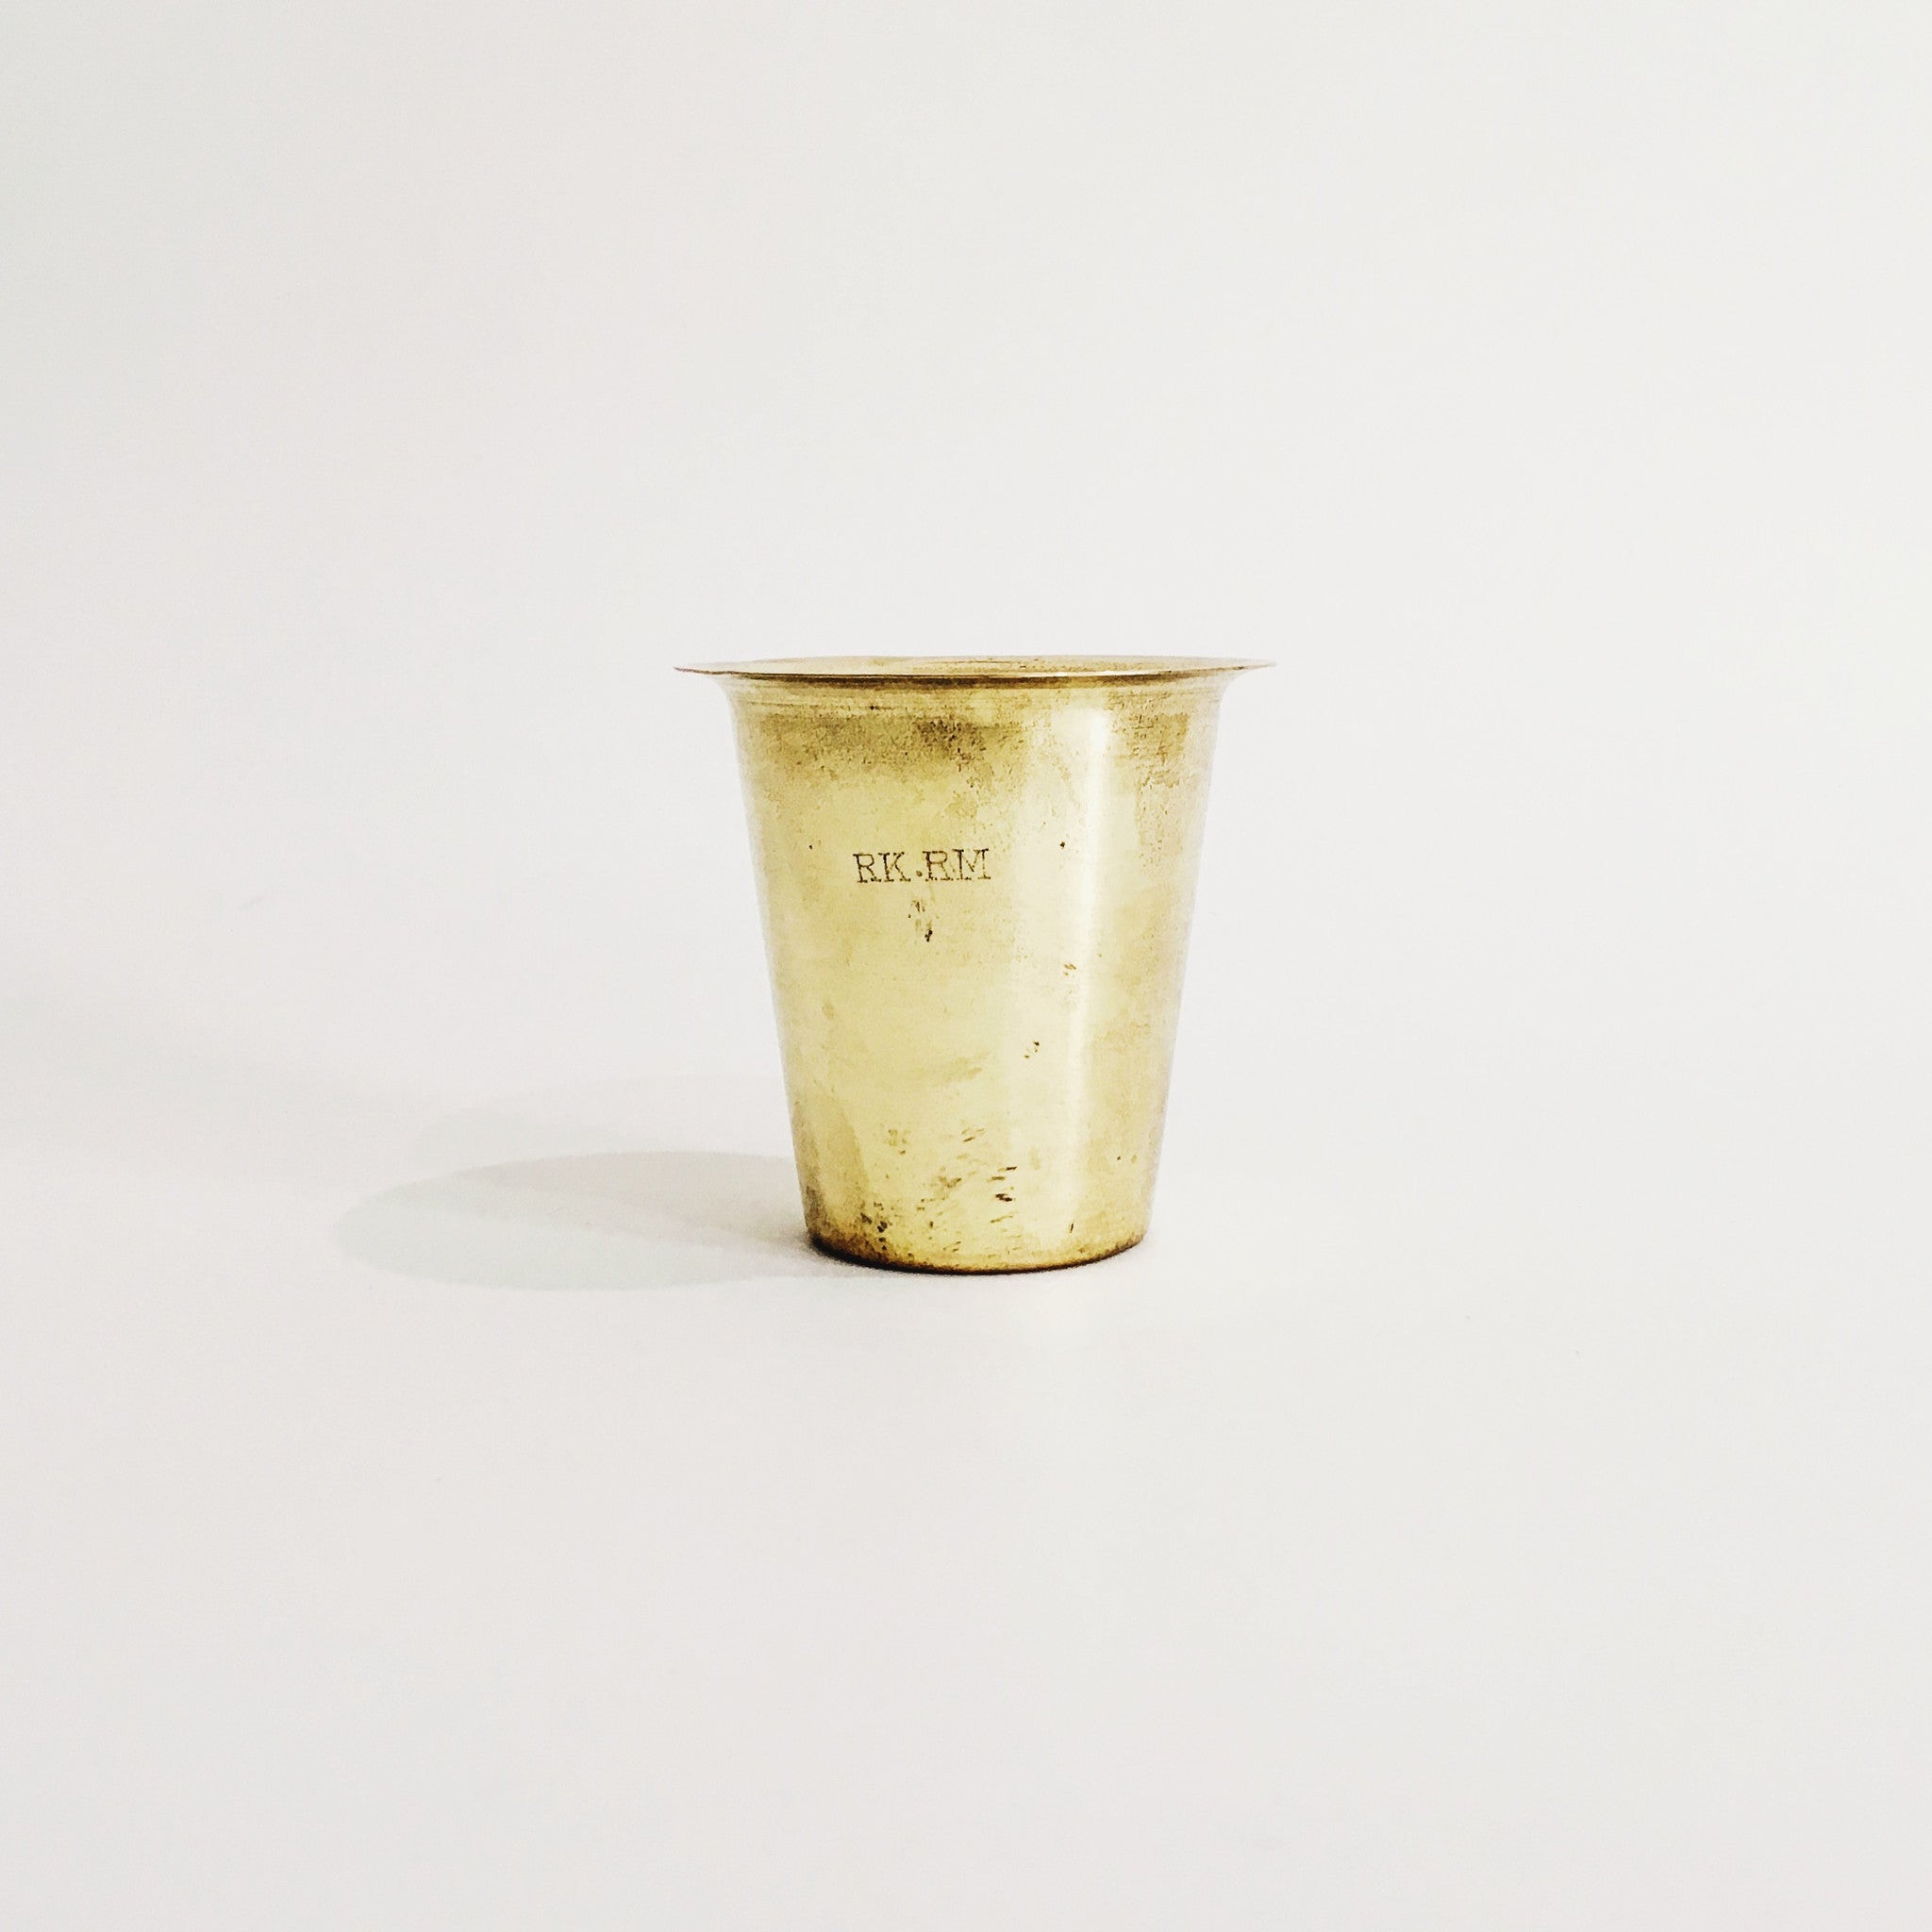 99% Brass Cup